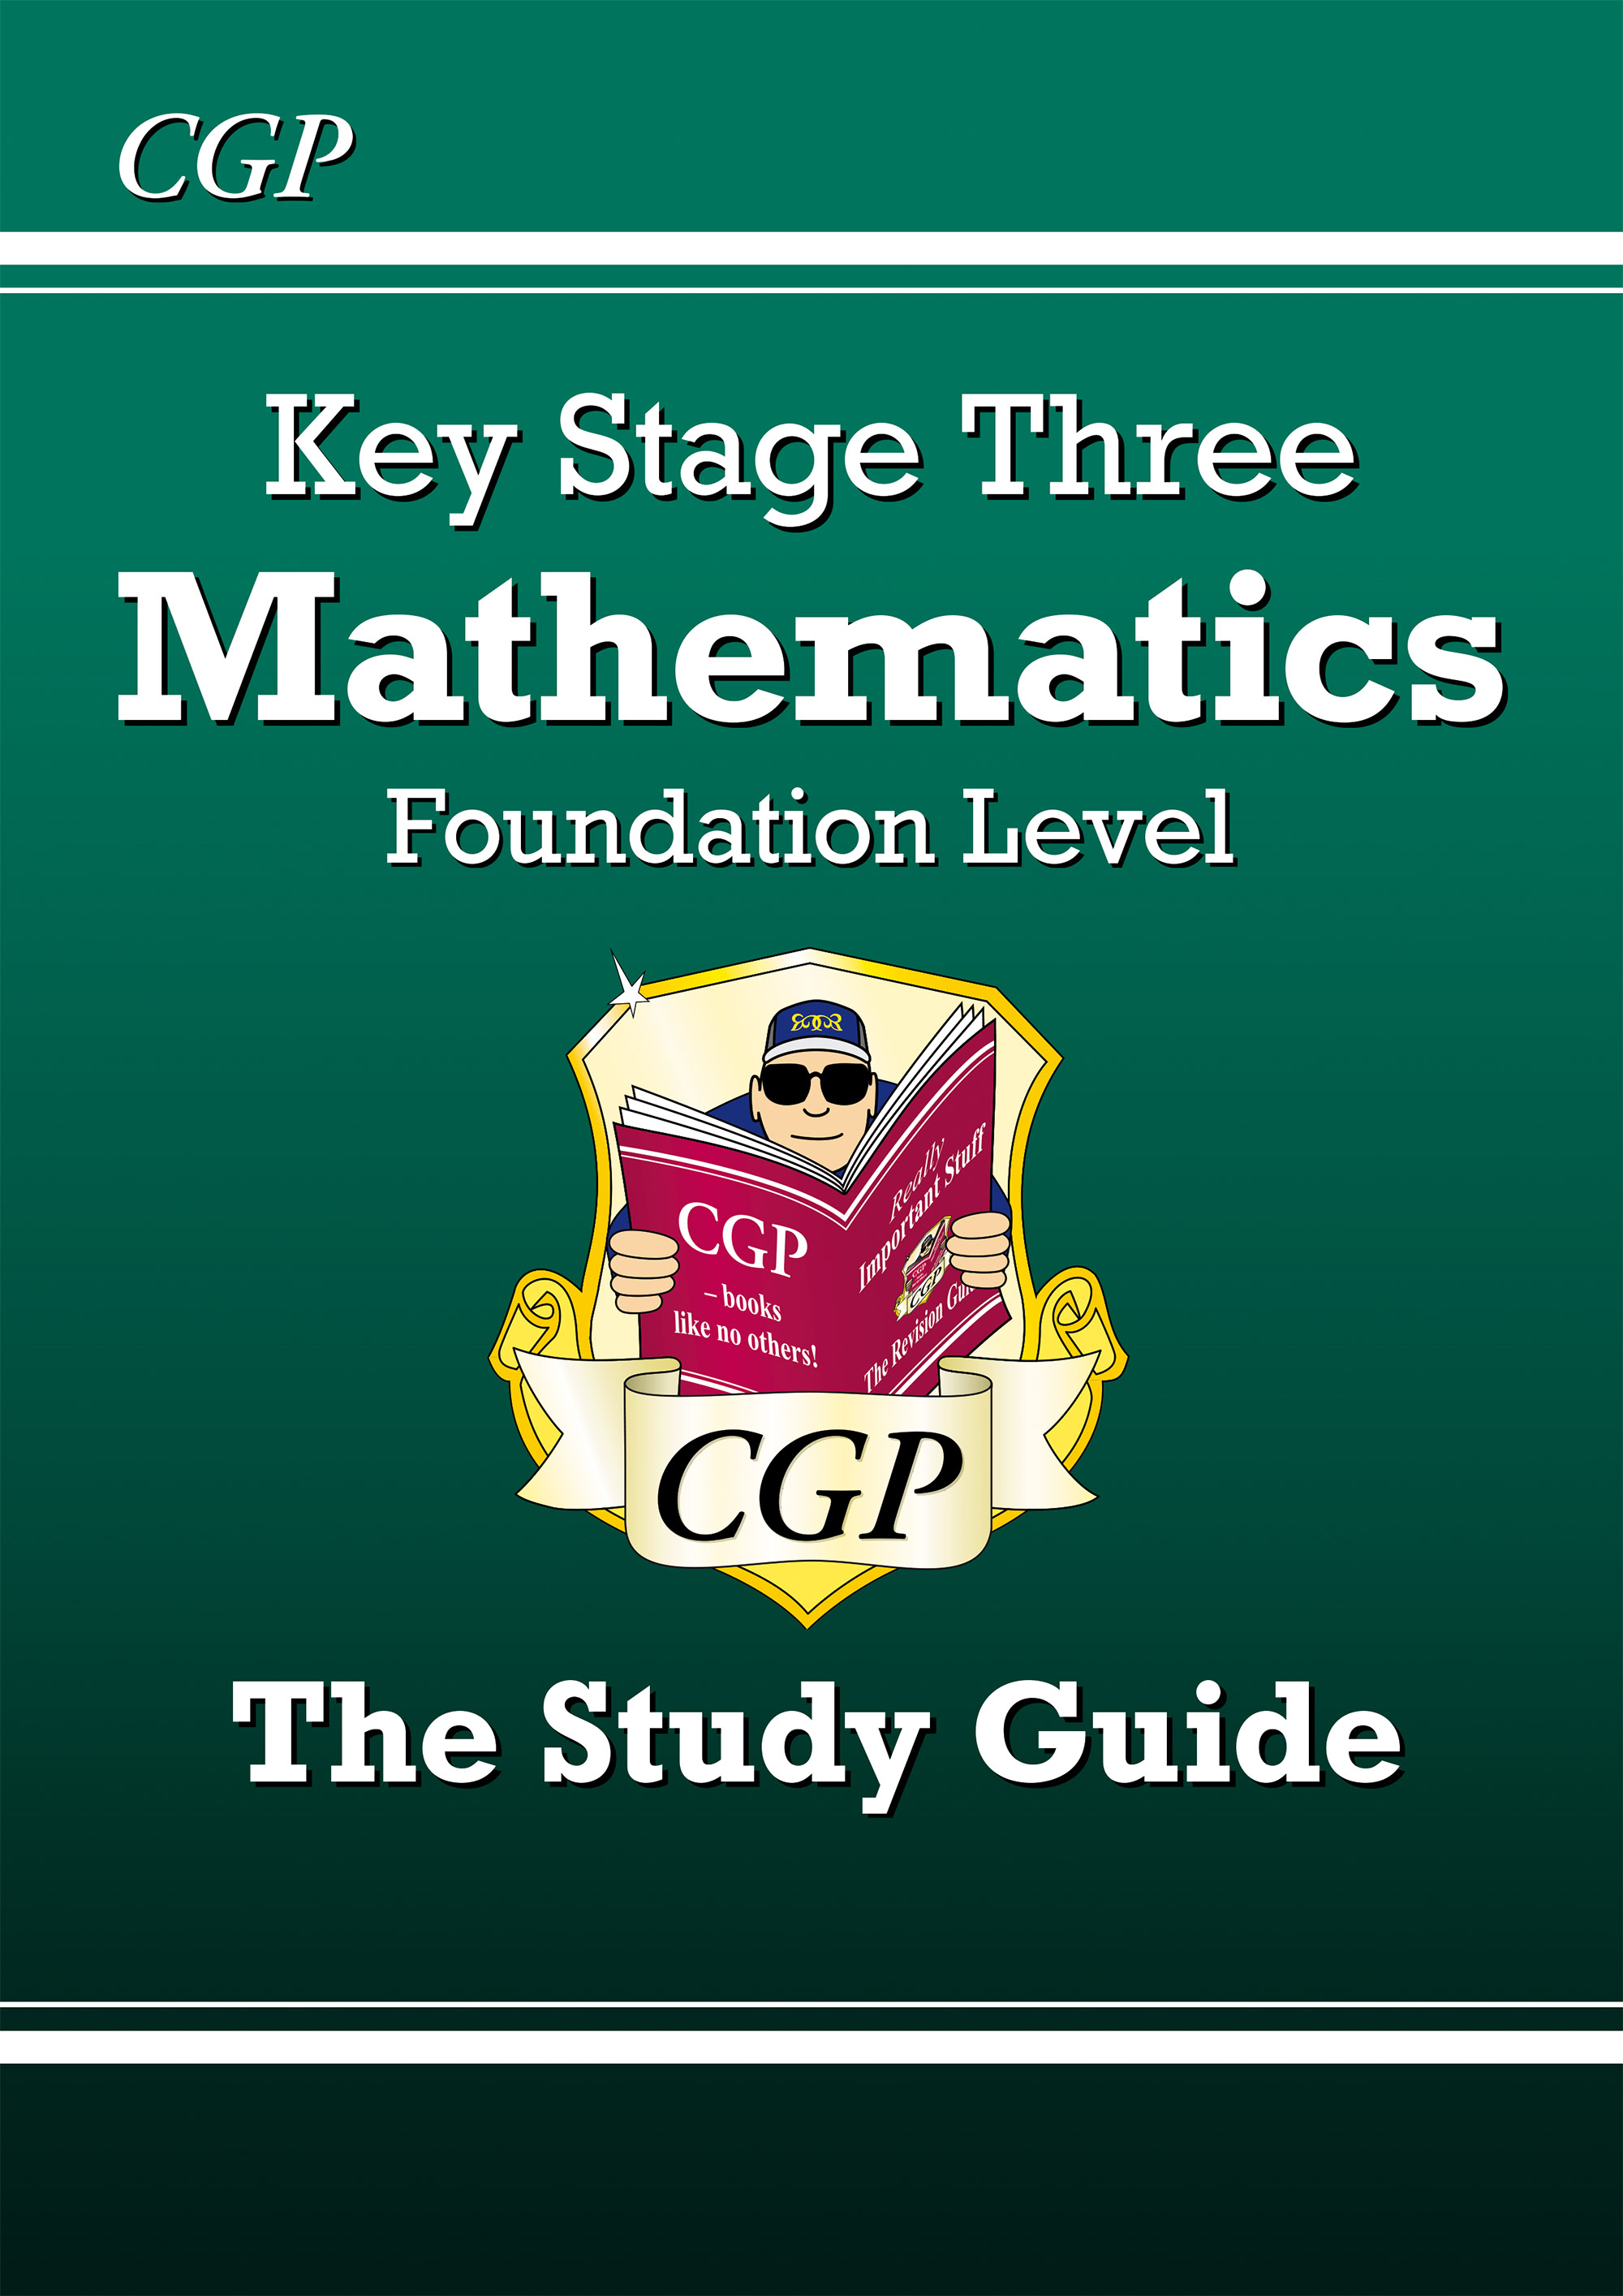 MFR32DK - KS3 Maths Study Guide - Foundation